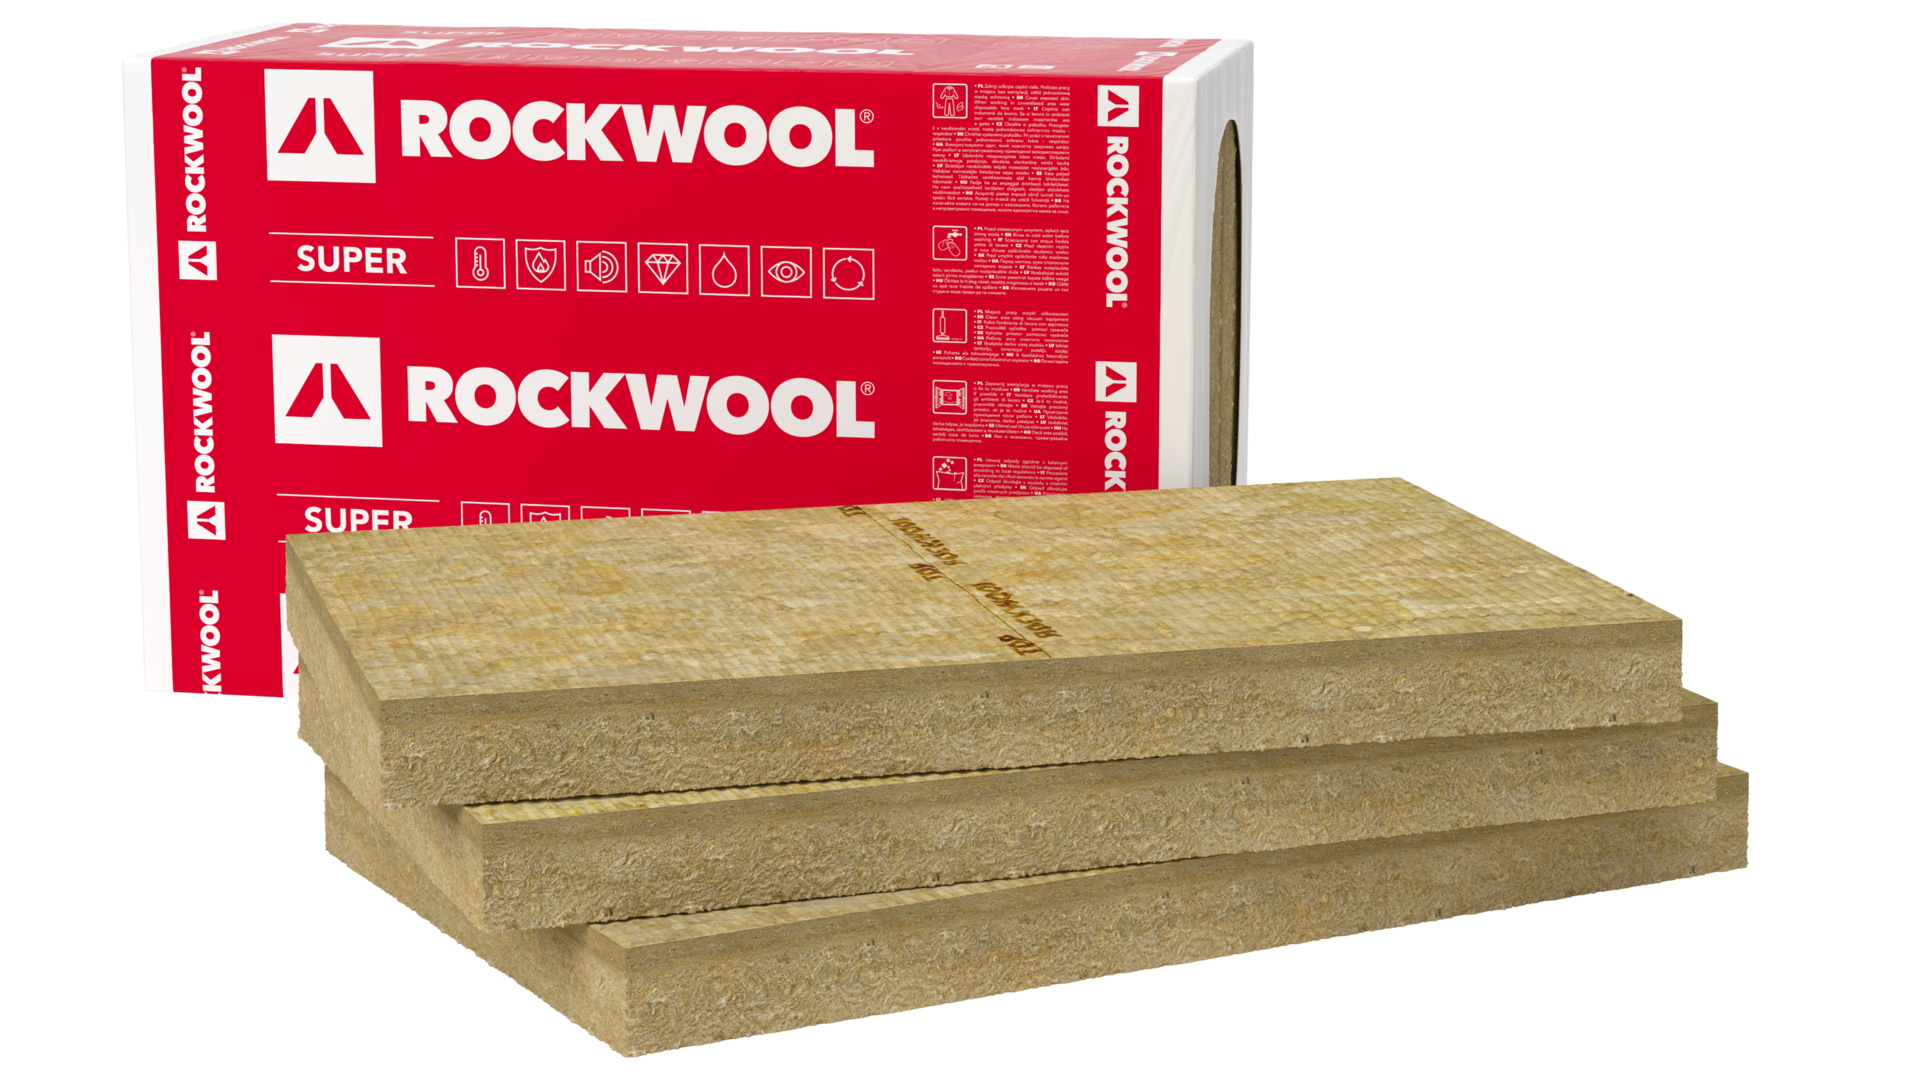 package, slabs, etics, ewi, facade, products, external wall insulation, rendered facade, frontrock super